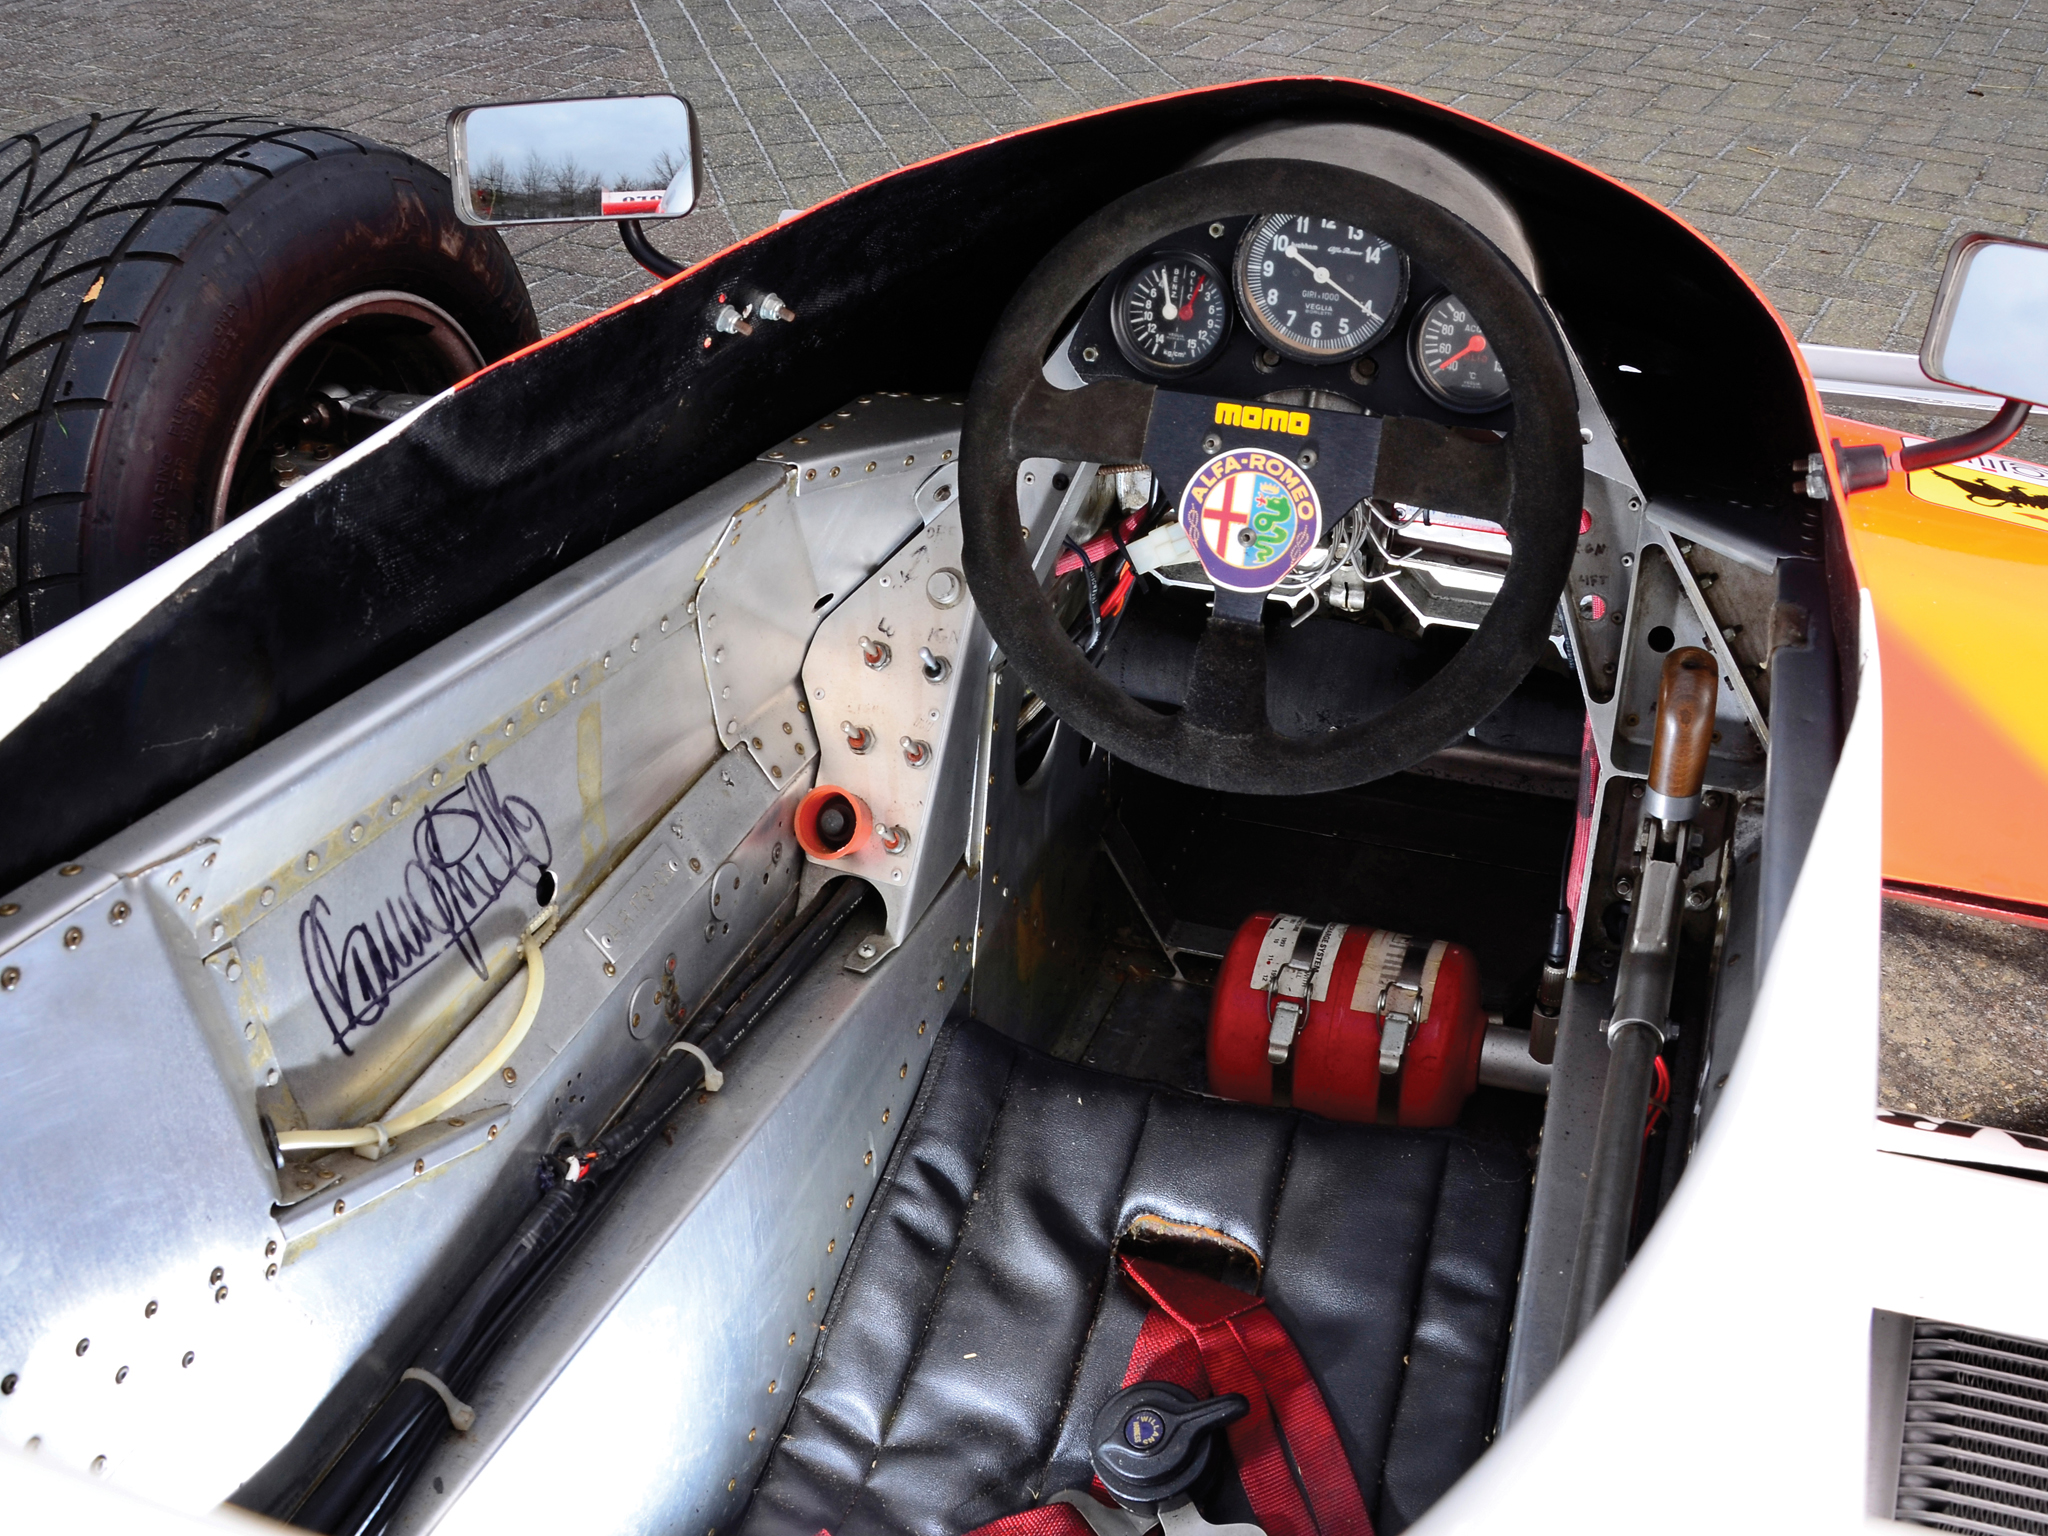 Alfa romeo 179 photo - 4